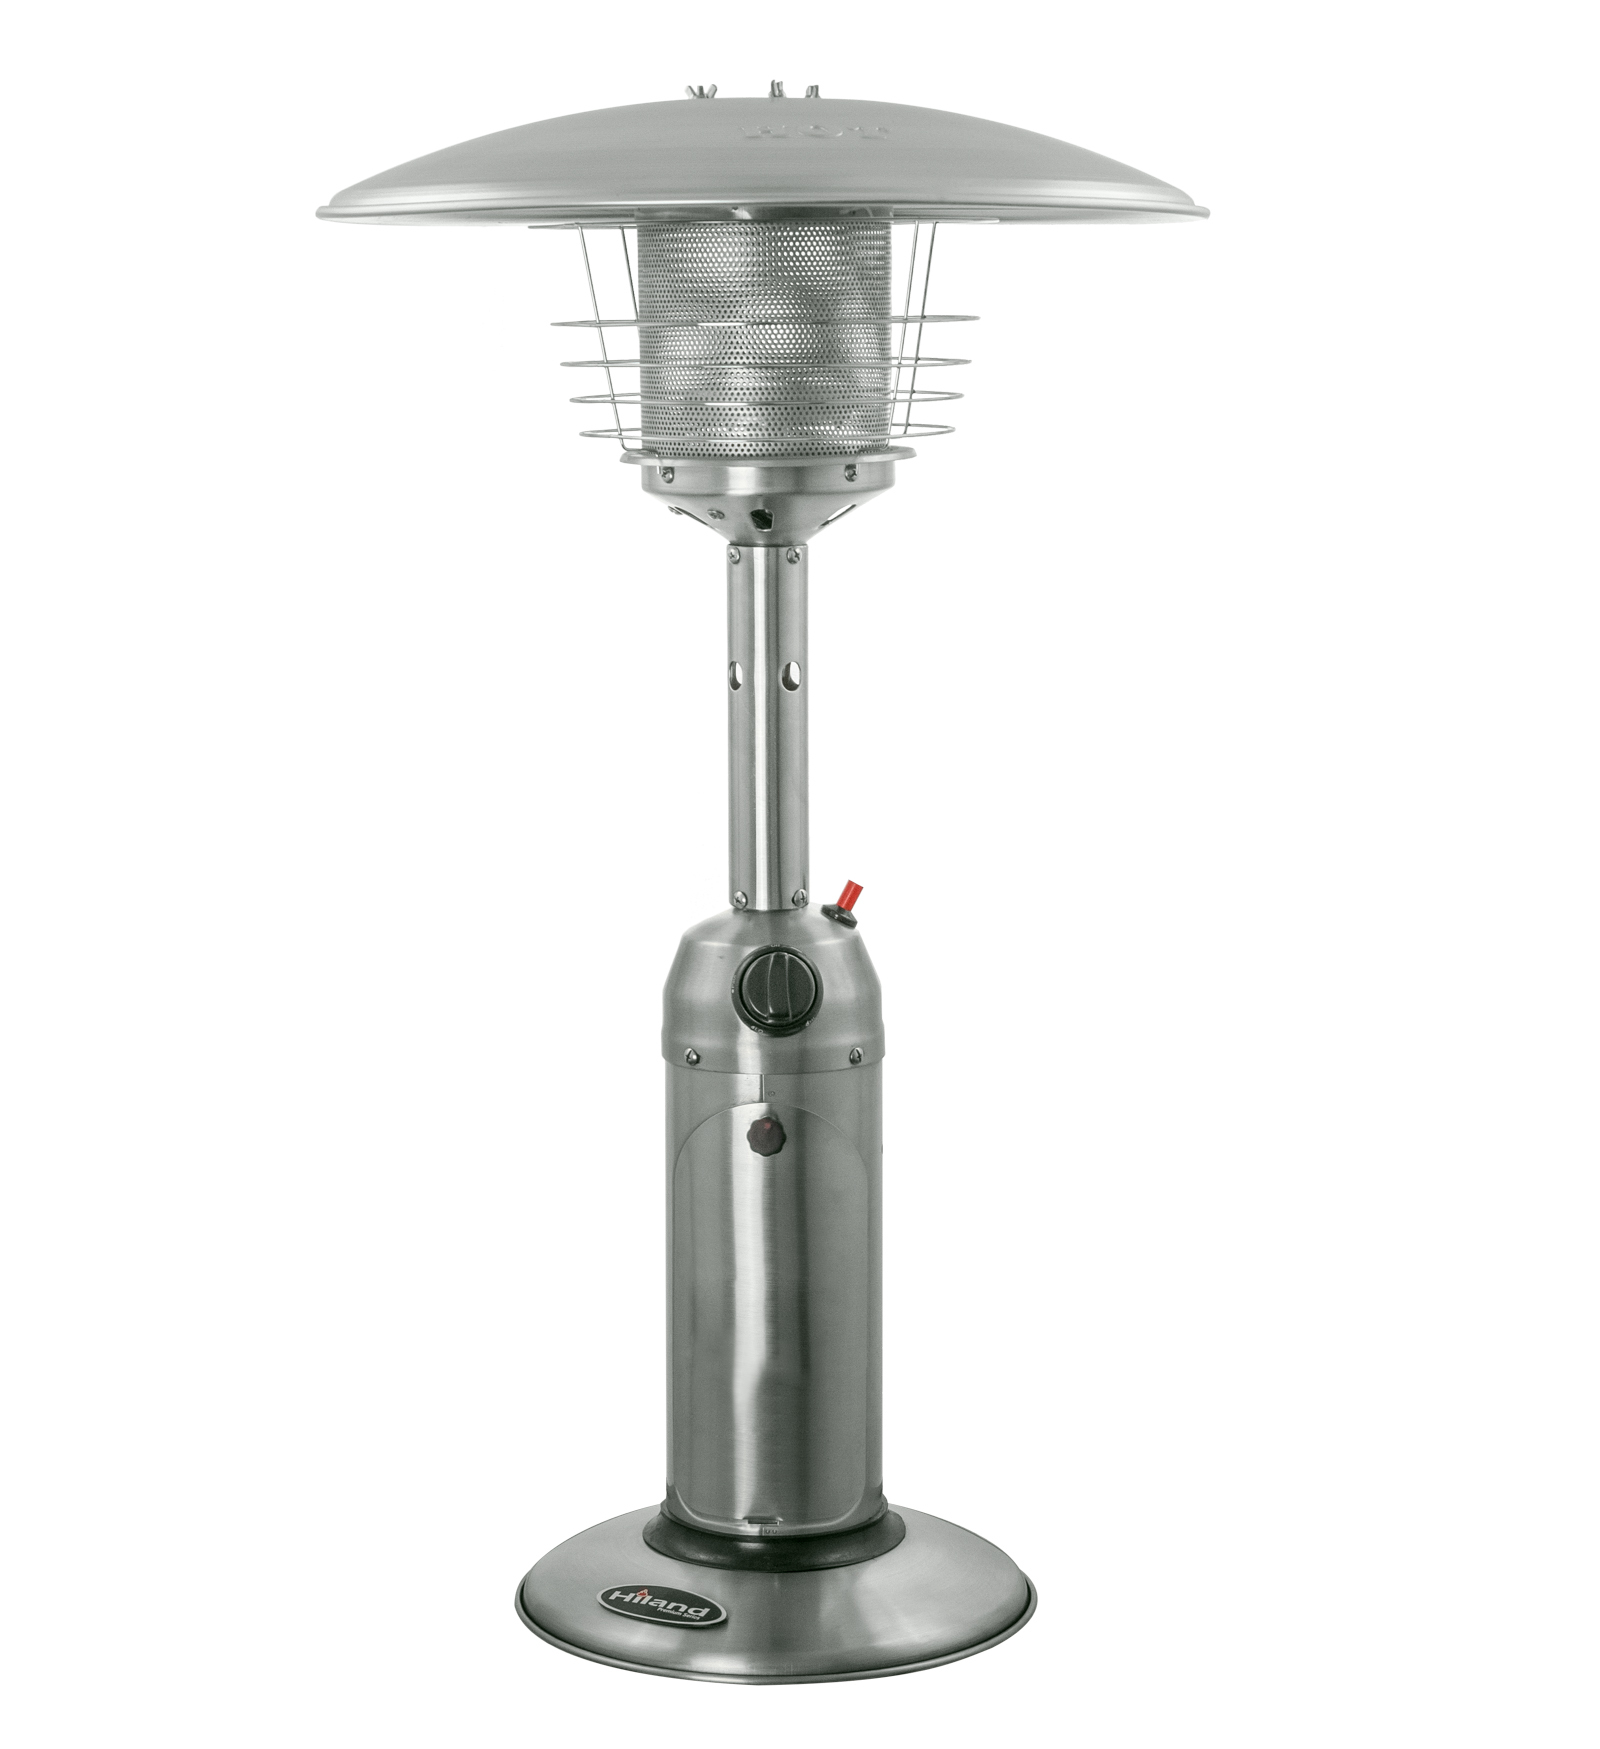 AZ Patio Heater Portable Stainless Steel Tabletop Heater